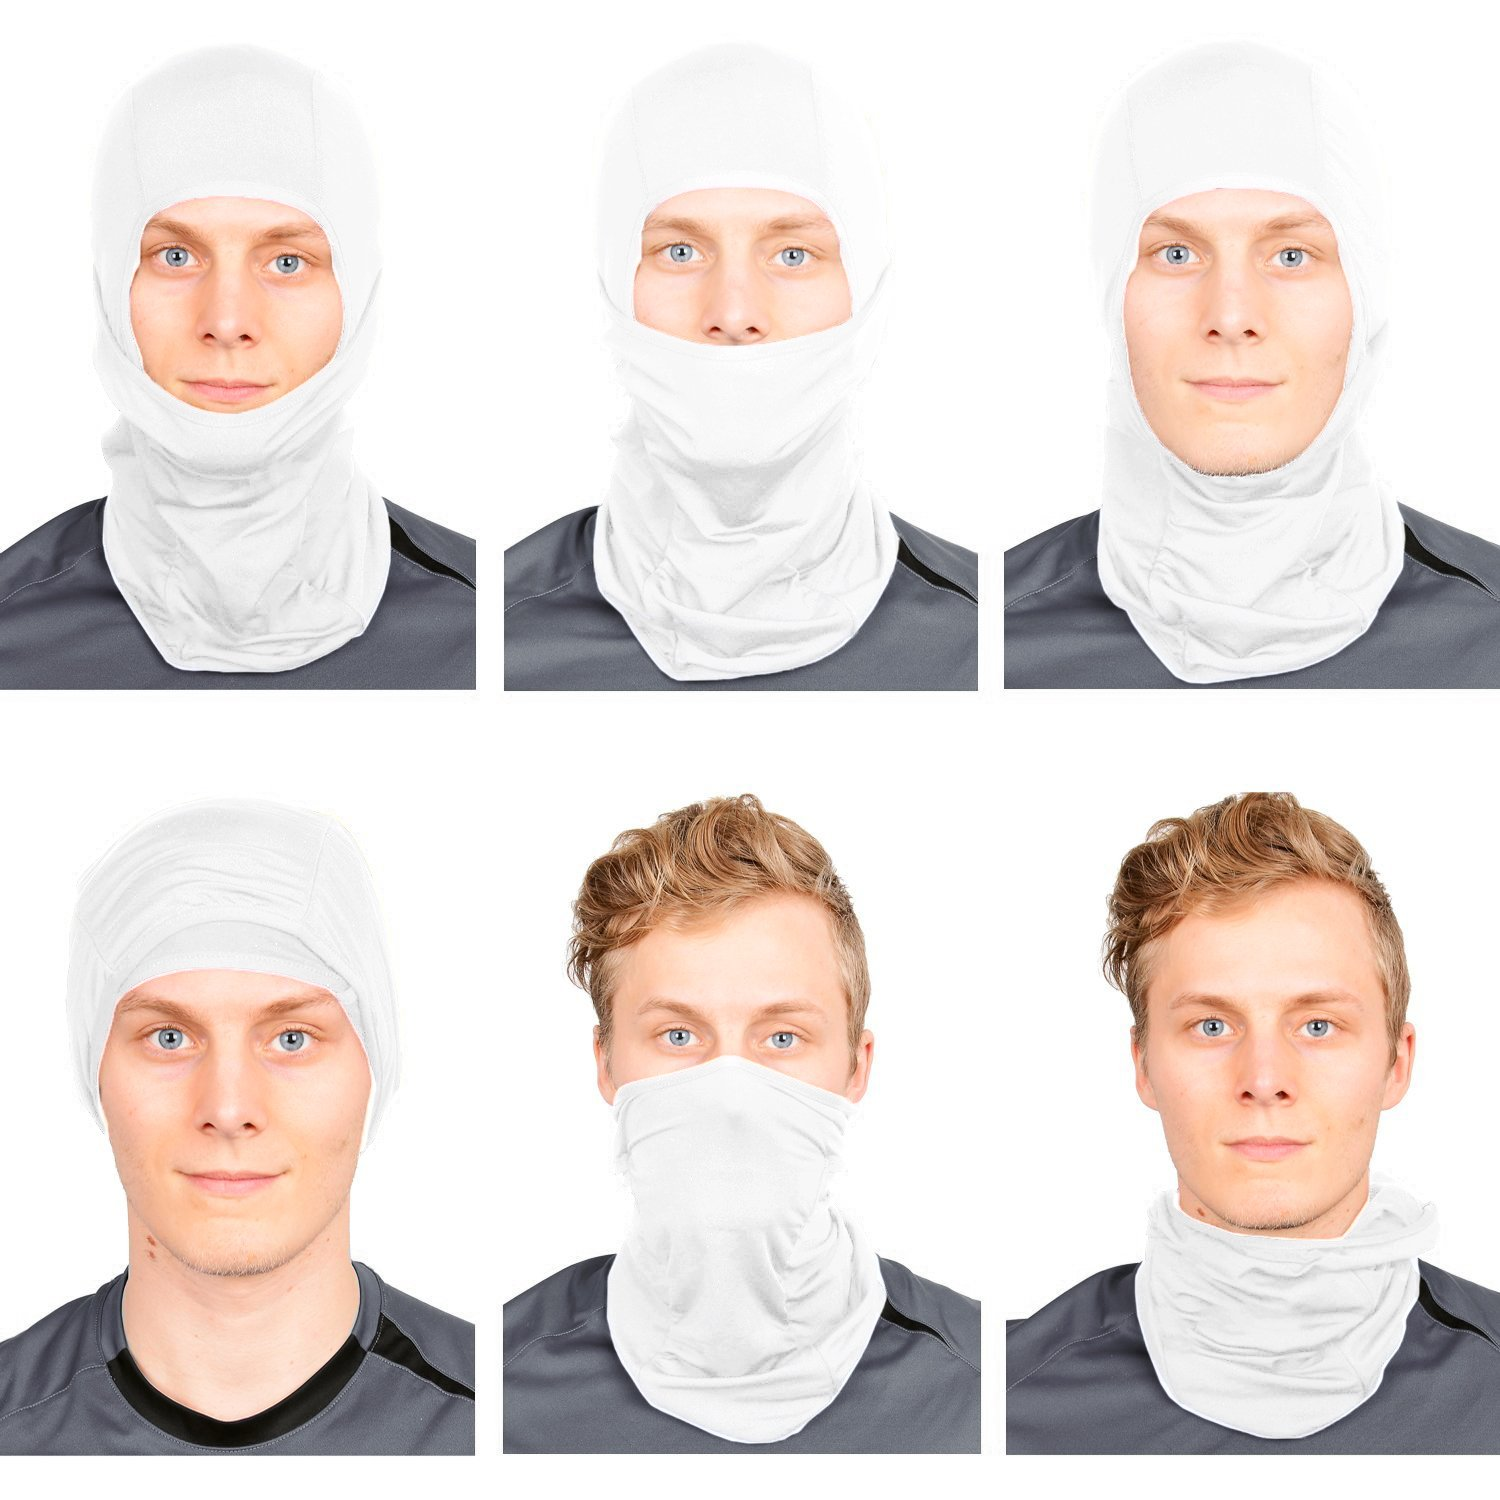 1-Pack or 2-Pack - Standard//Nordic//Arctic The Friendly Swede Balaclava Face Mask Neck Gaiter and Motorcycle Helmet Liner Ski and Winter Sports Headwear